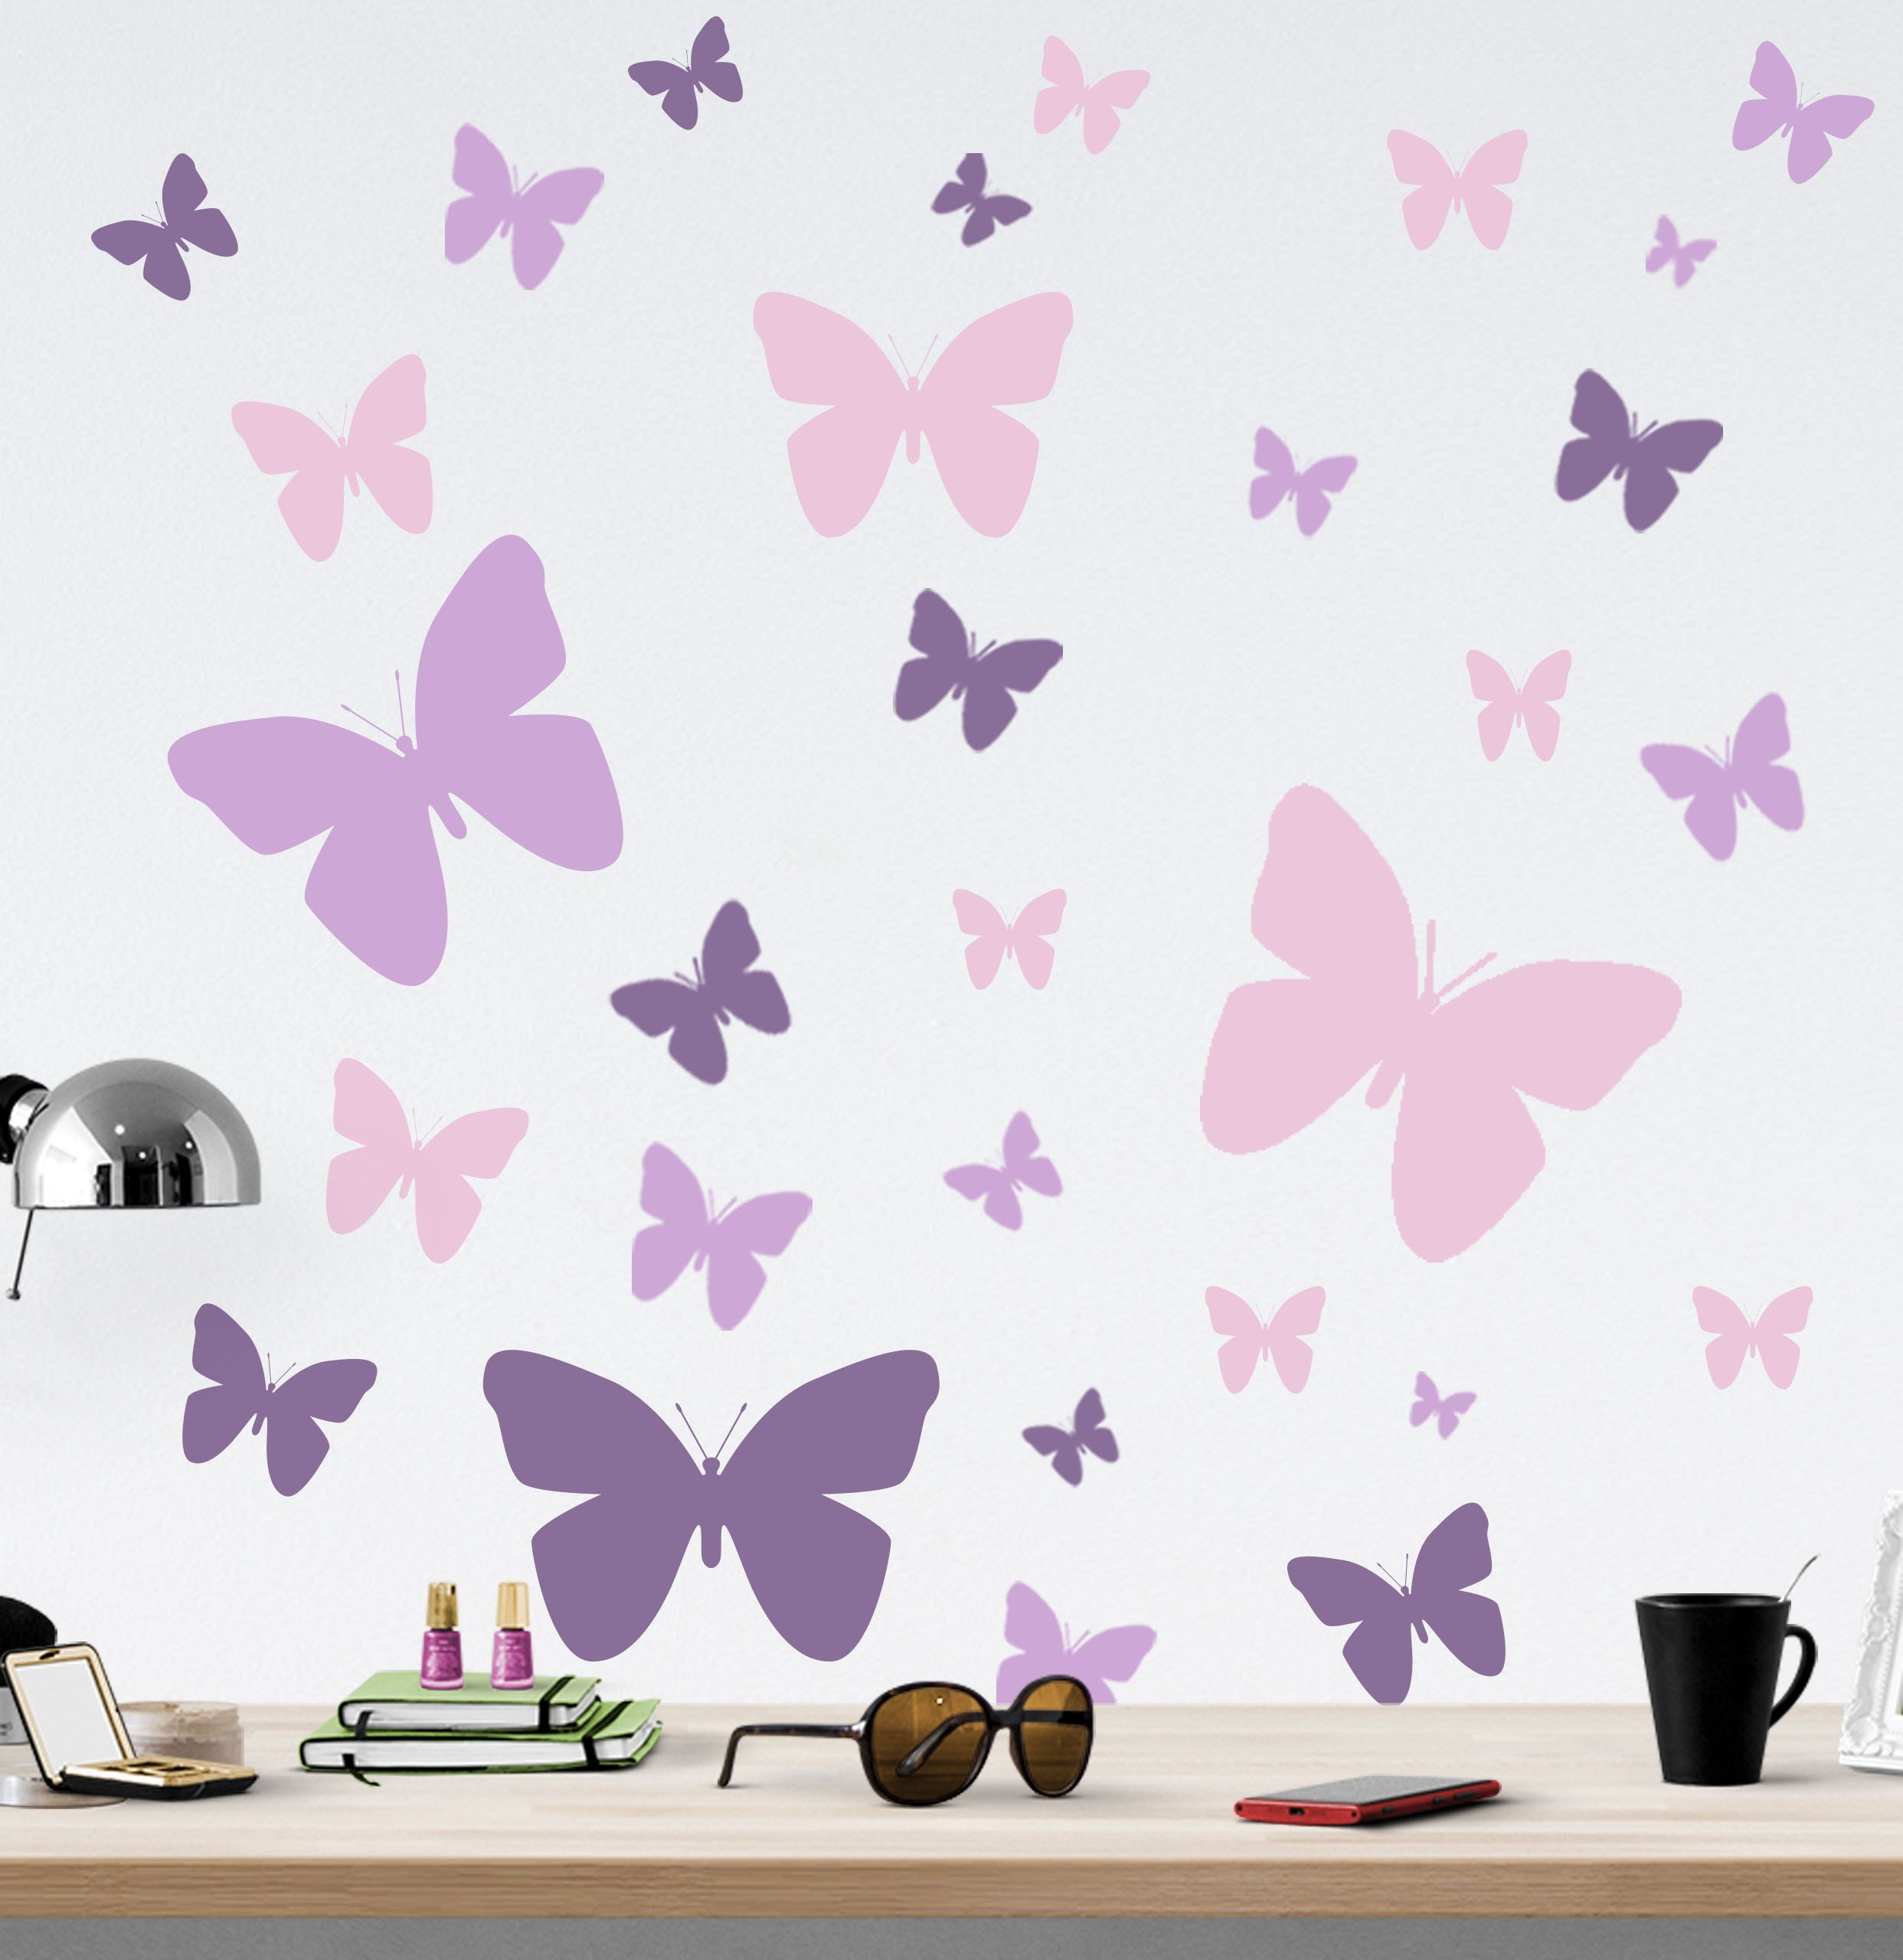 39 Butterfly Wall Decals Girls Room Decor Decorative Peel